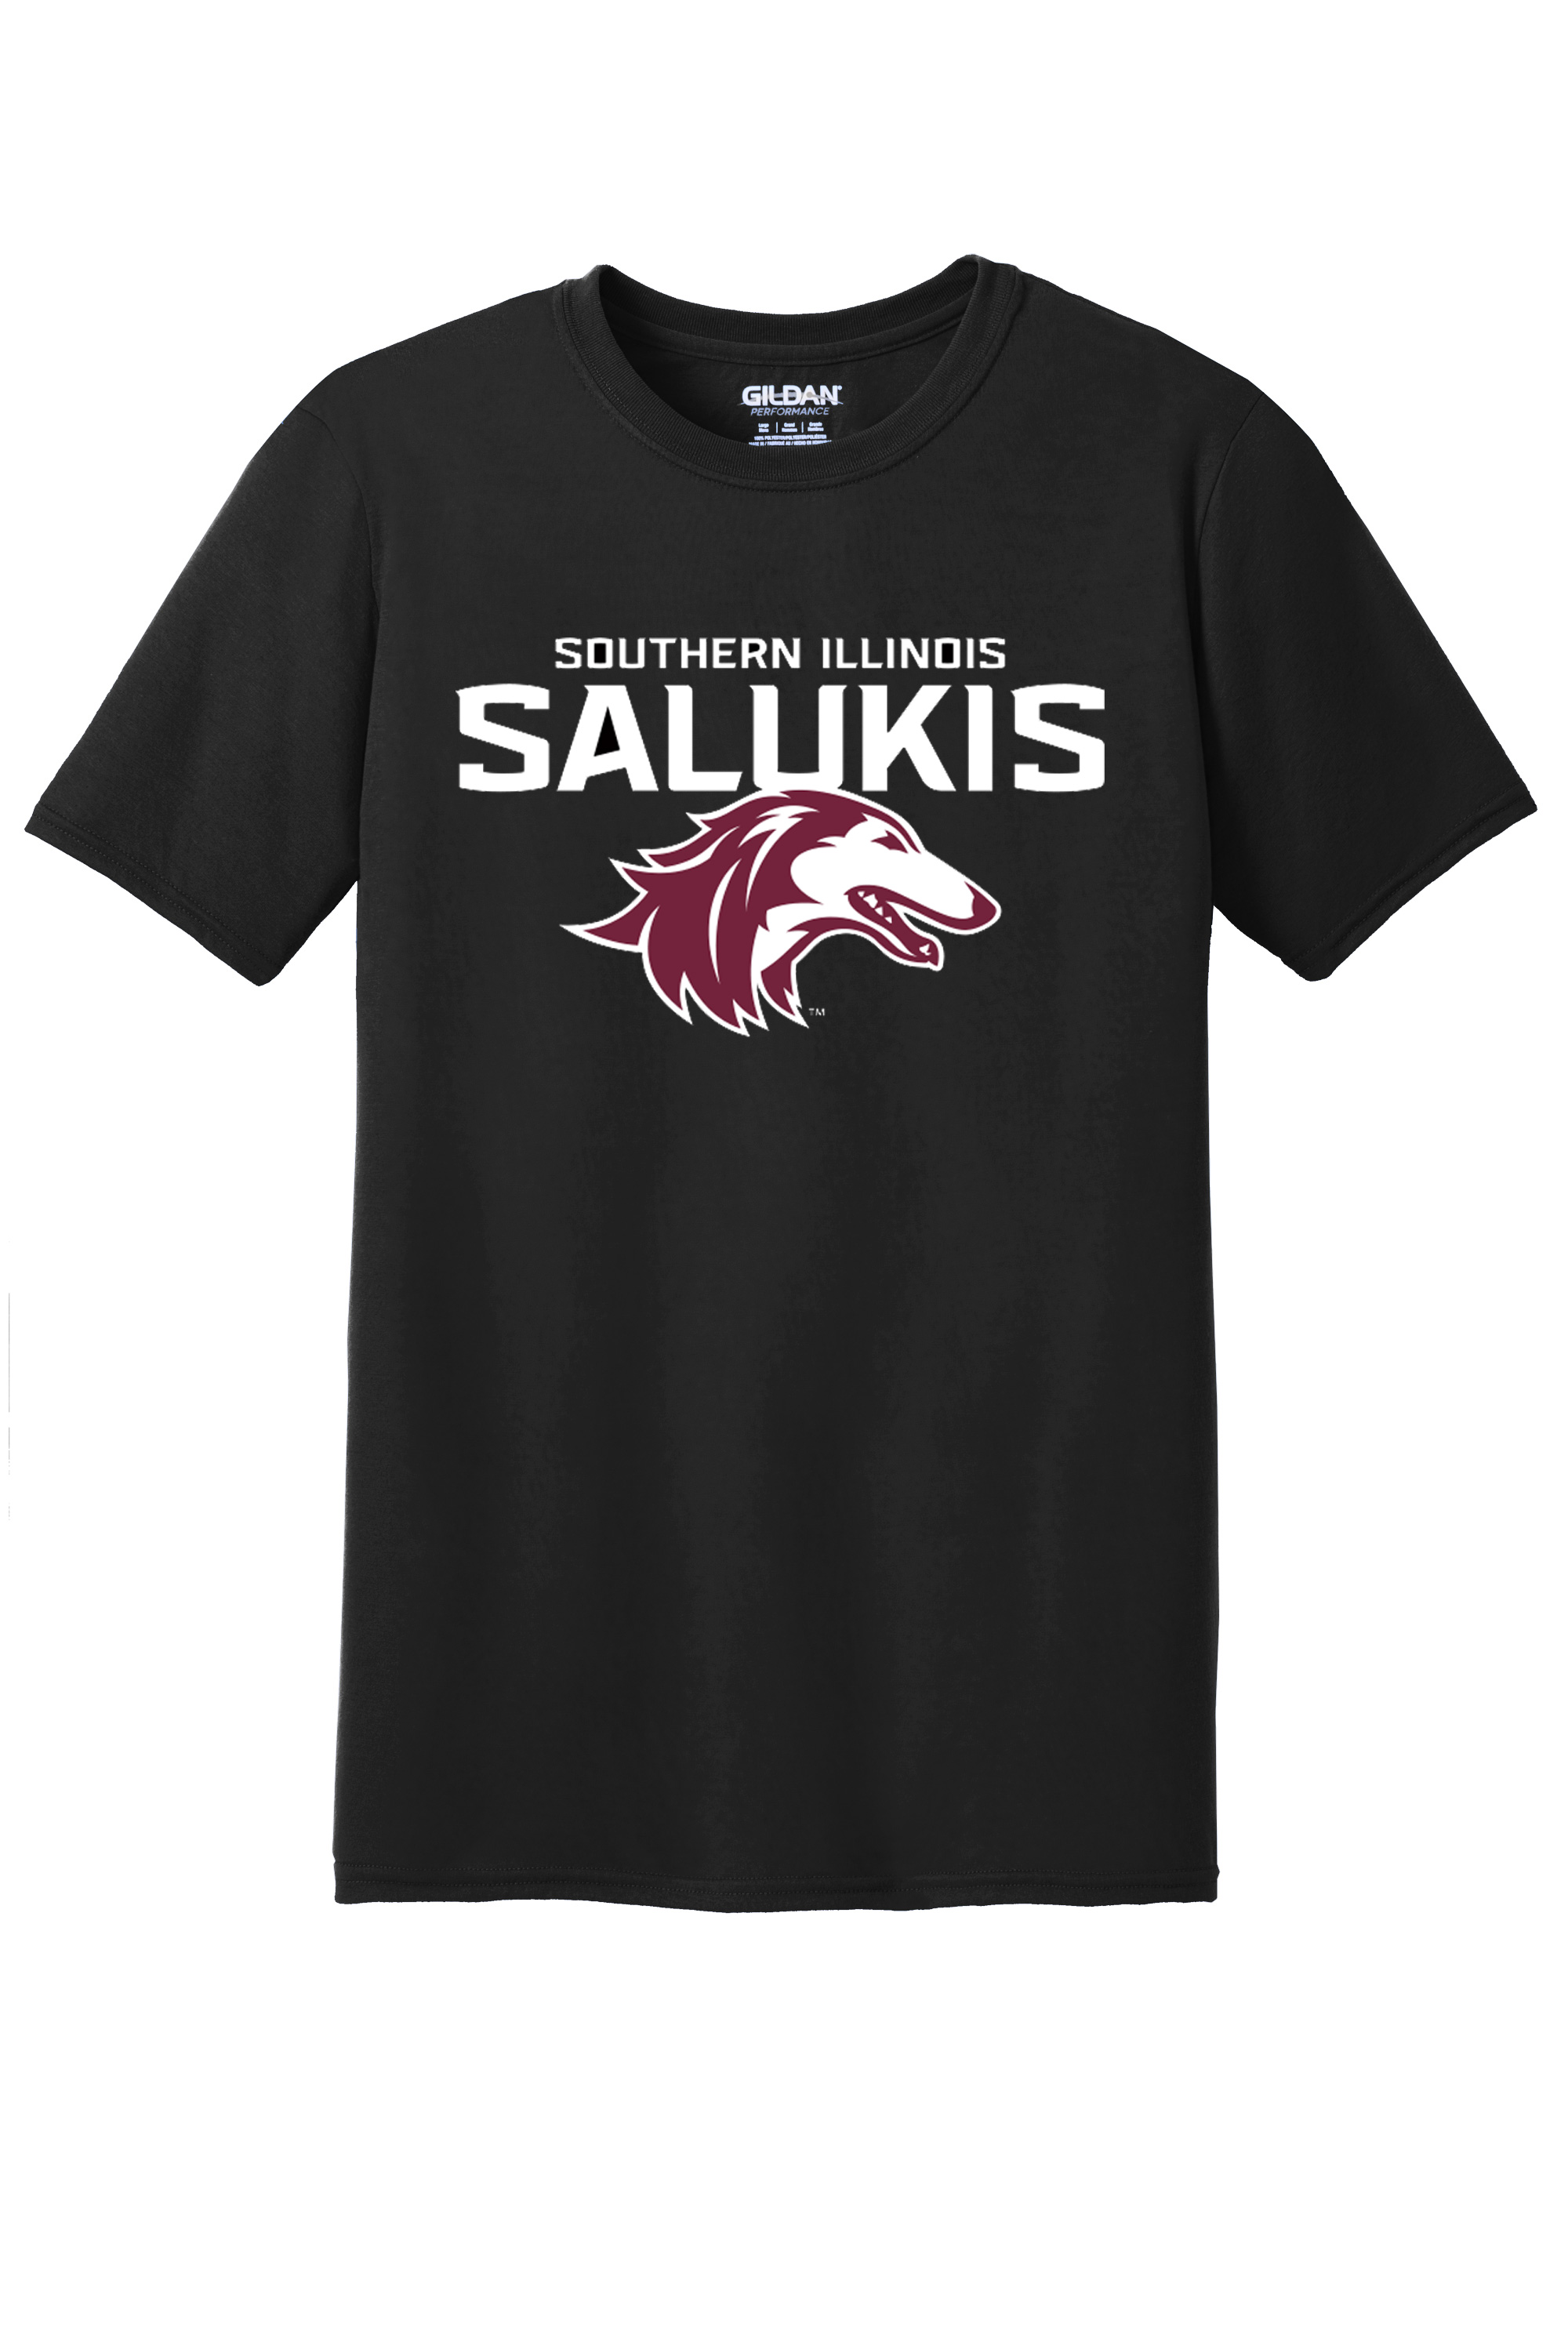 Image for the NEW LADIES BLACK 2019 ATHLETIC LOGO SOUTHERN ILLINOIS SALUKIS T-SHIRT product